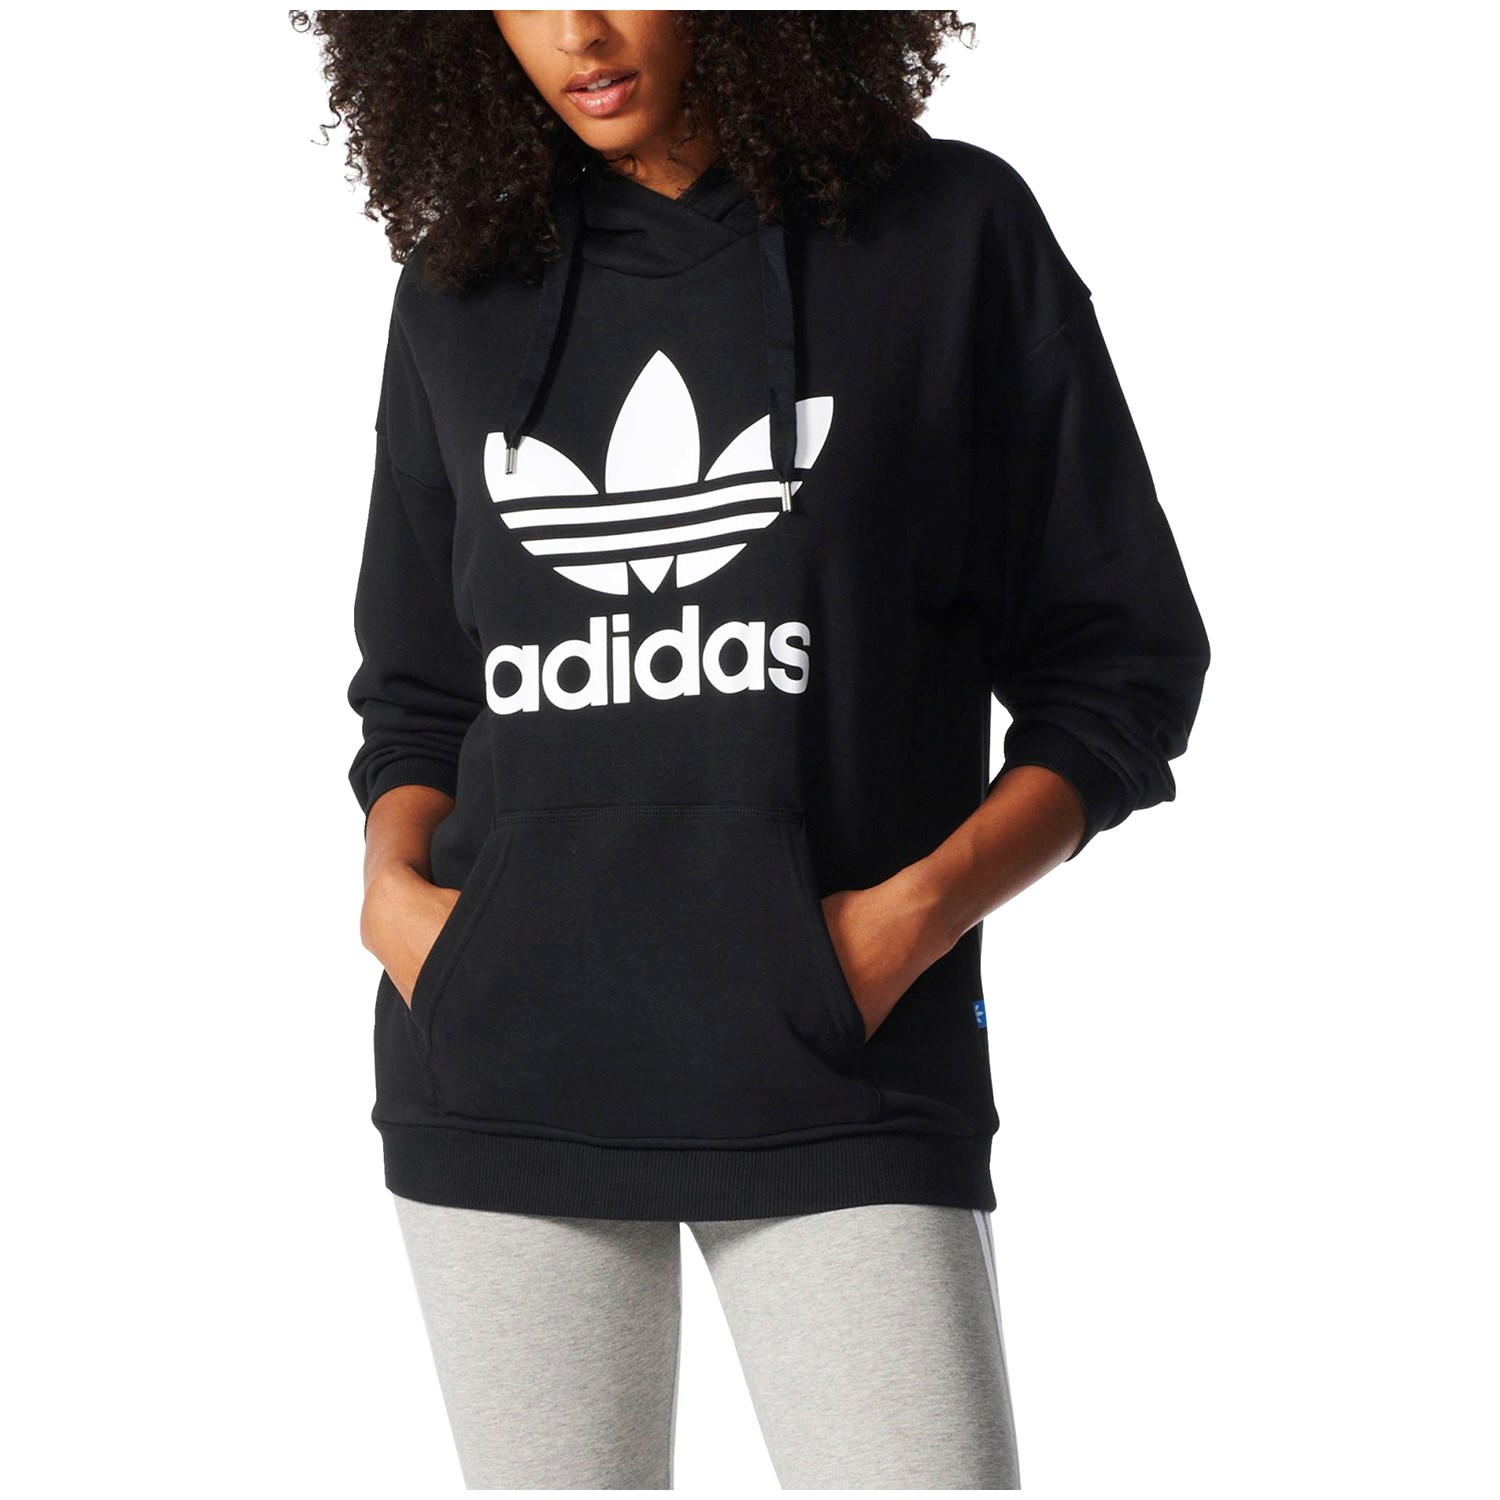 adidas Originals Womens Trefoil Sweatshirt Black